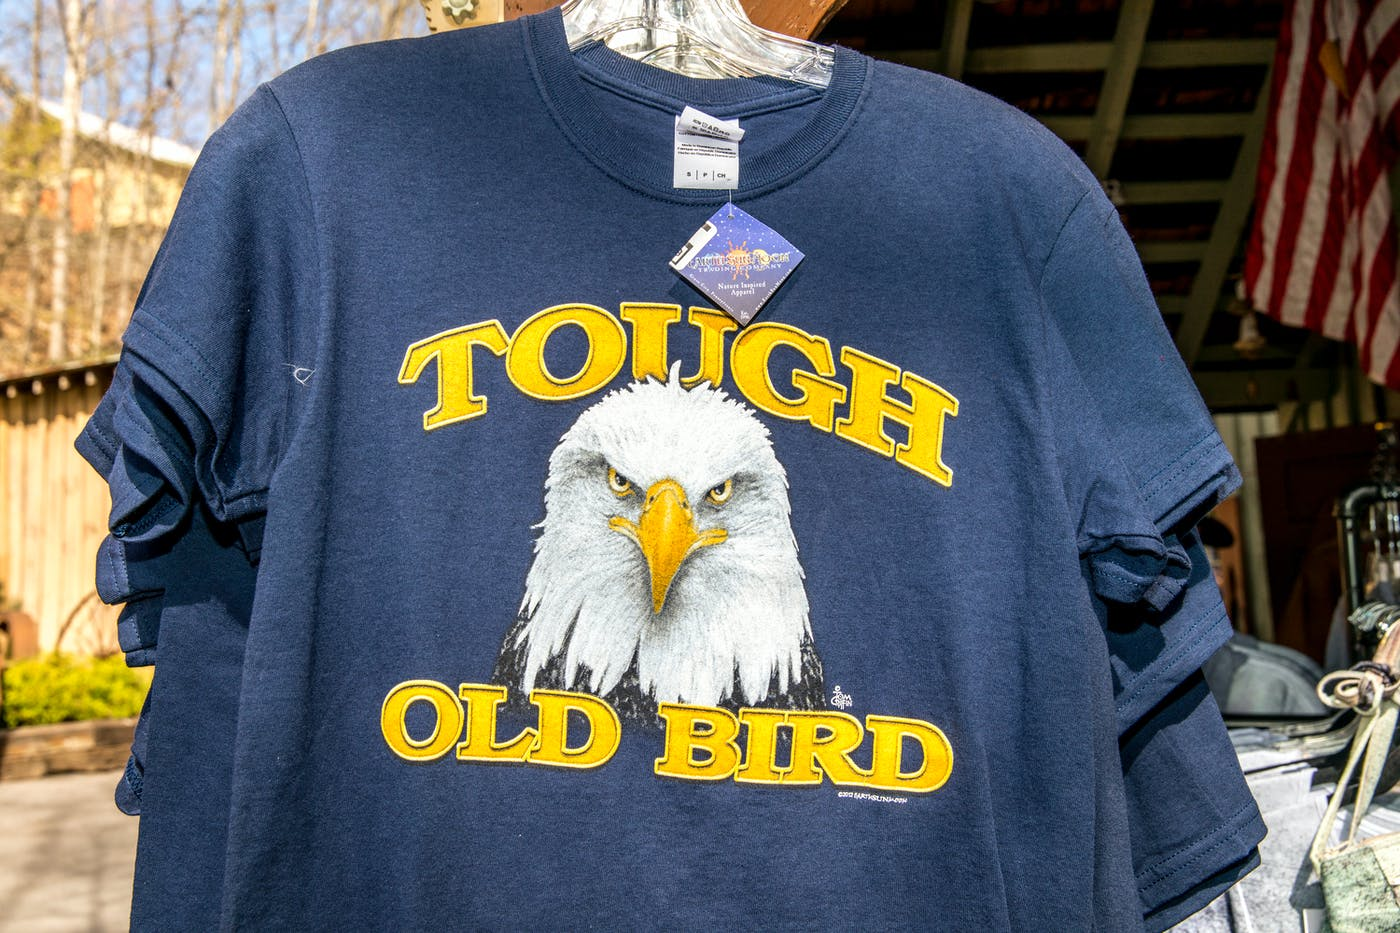 American Eagle Outfitter Topic Tendencies Tshirt Legend Led Turquoise M A T Shirt For Sale At Dollywoods Eagles Nest Store Which Is Owned And